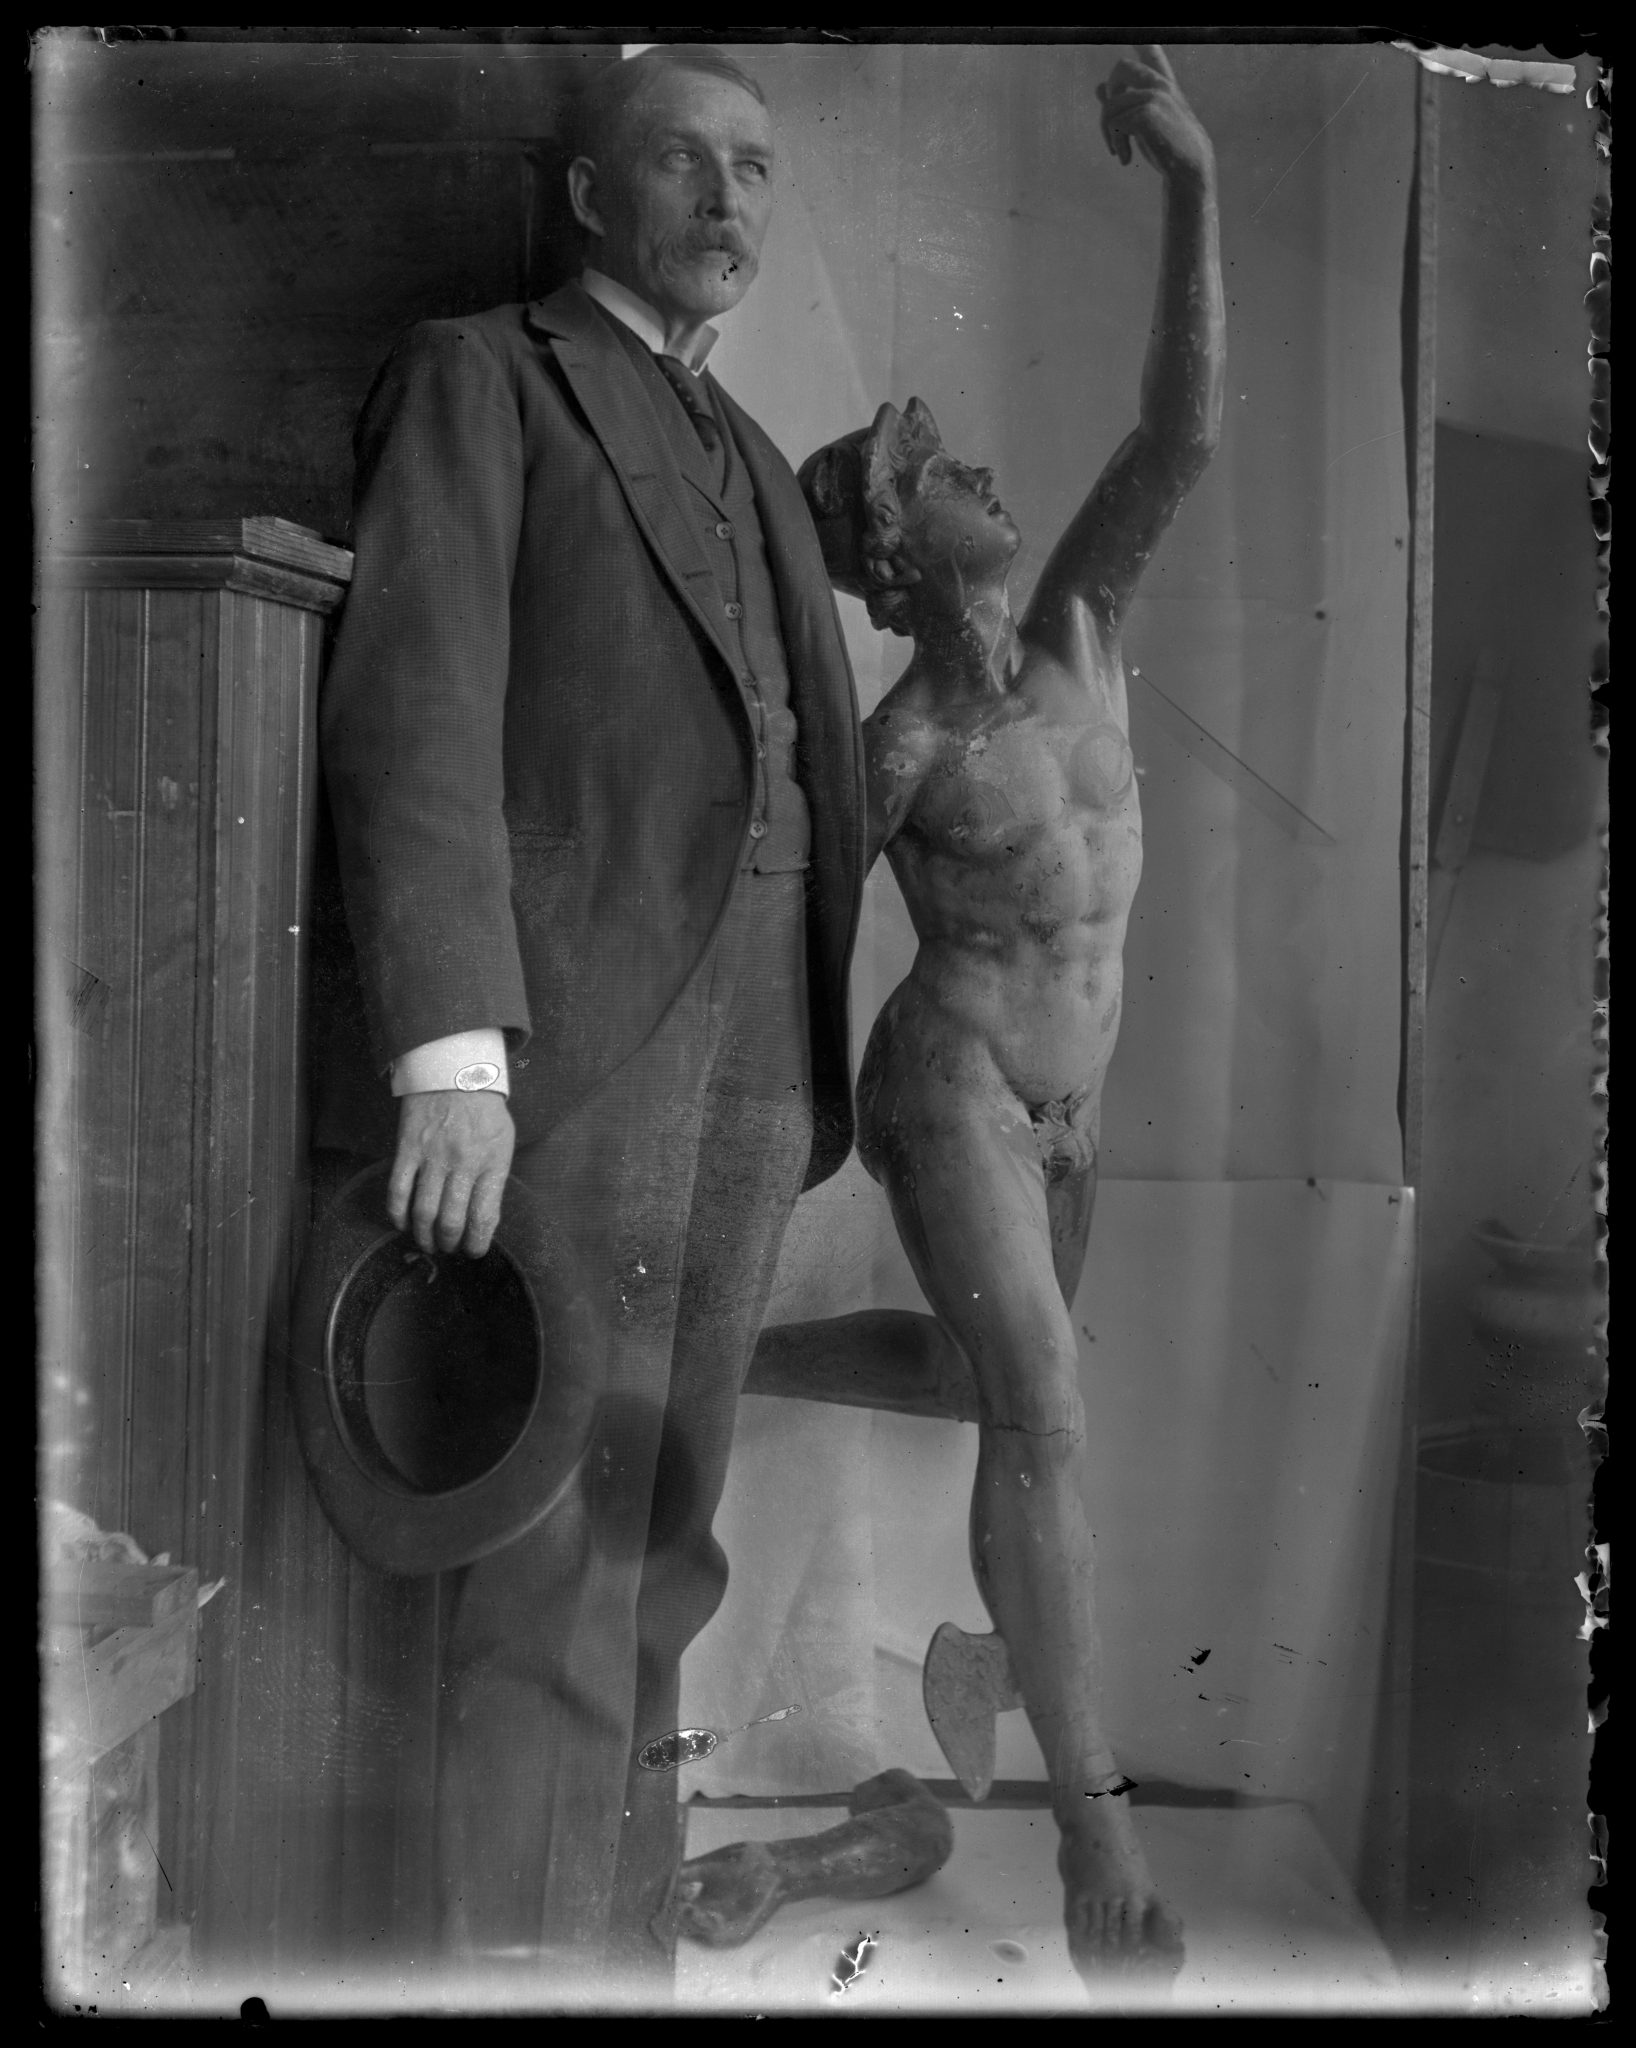 <p>Picture of Mercury with Unknown Man, 1913.</p><p>Mercury Collection.</p><p>Special Collections and University Archives,</p><p>Colgate University Libraries.</p>